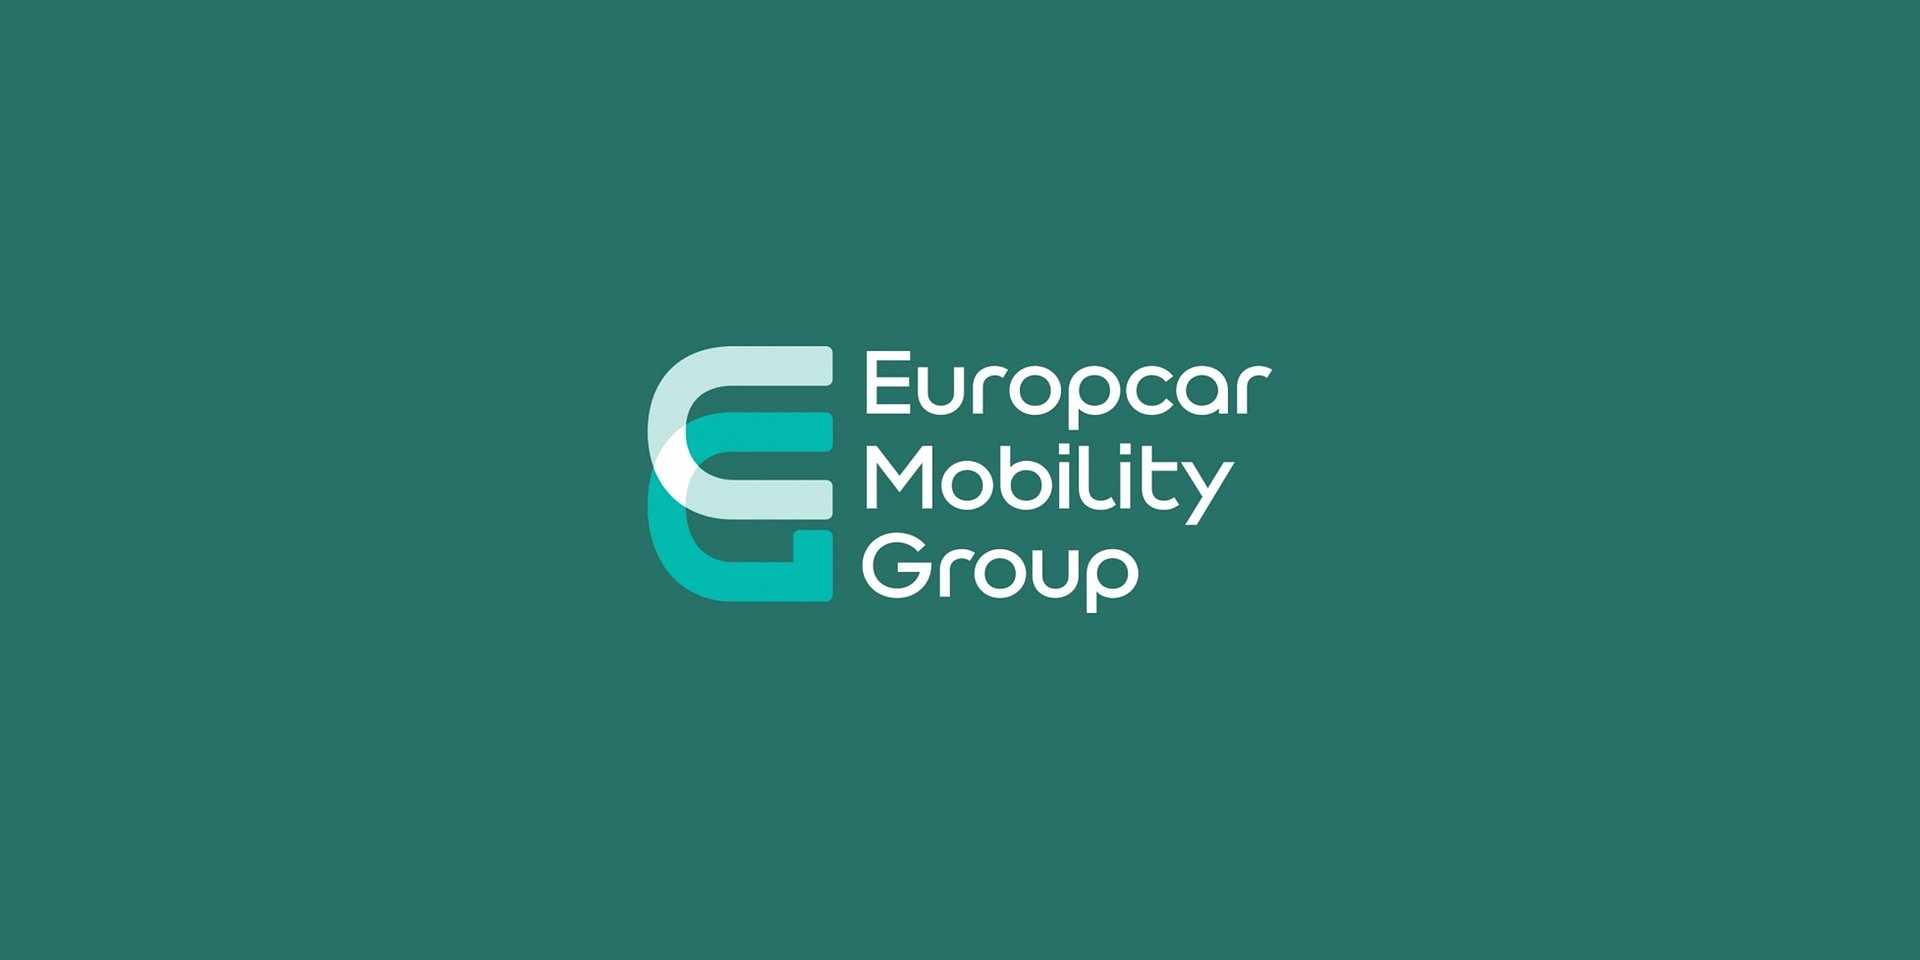 """Europcar Mobility Group deploys its """"One Sustainable Fleet"""" programme to reach more than 1/3 of electric and hybrid vehicles in its fleet in 2023"""